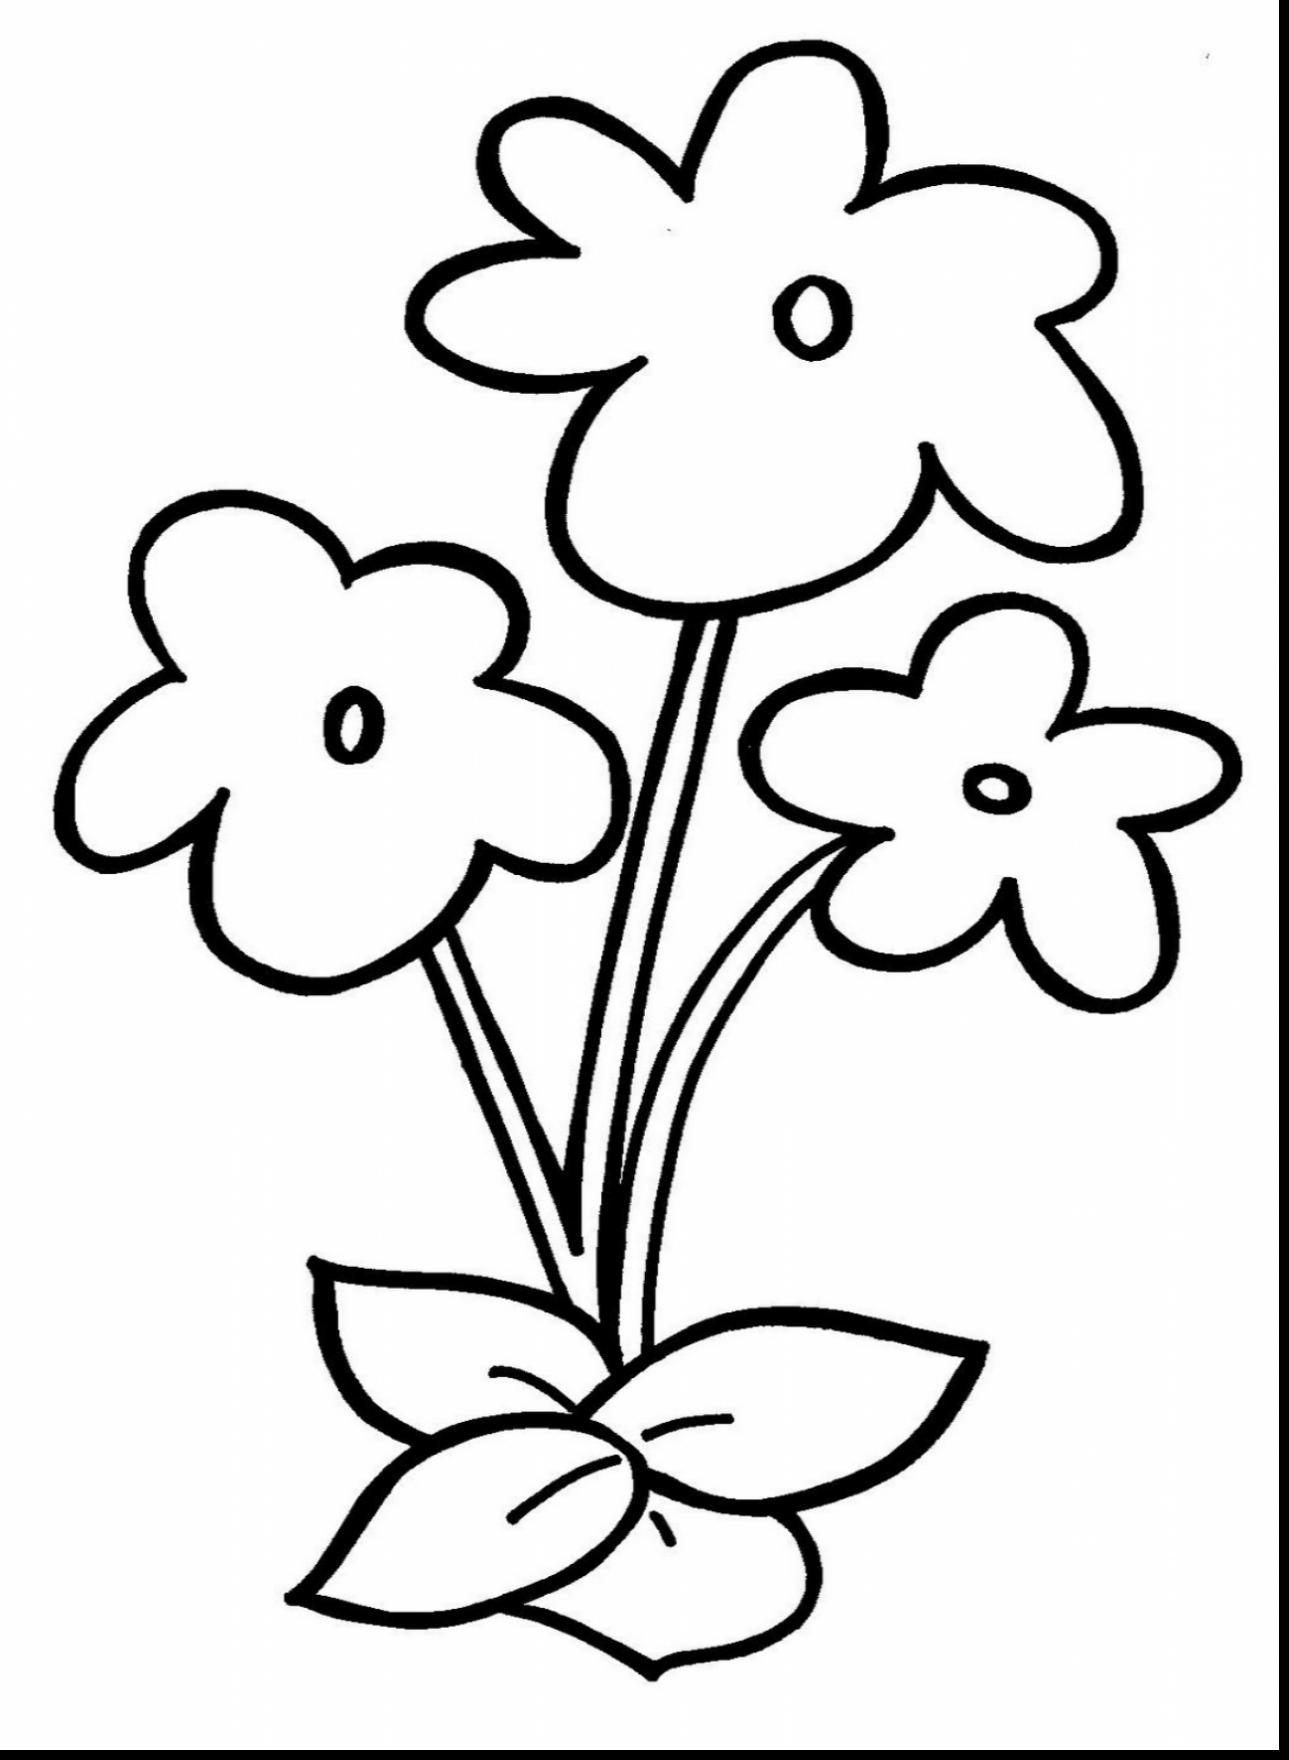 coloring page pdf coloring pages pdf free download on clipartmag pdf coloring page